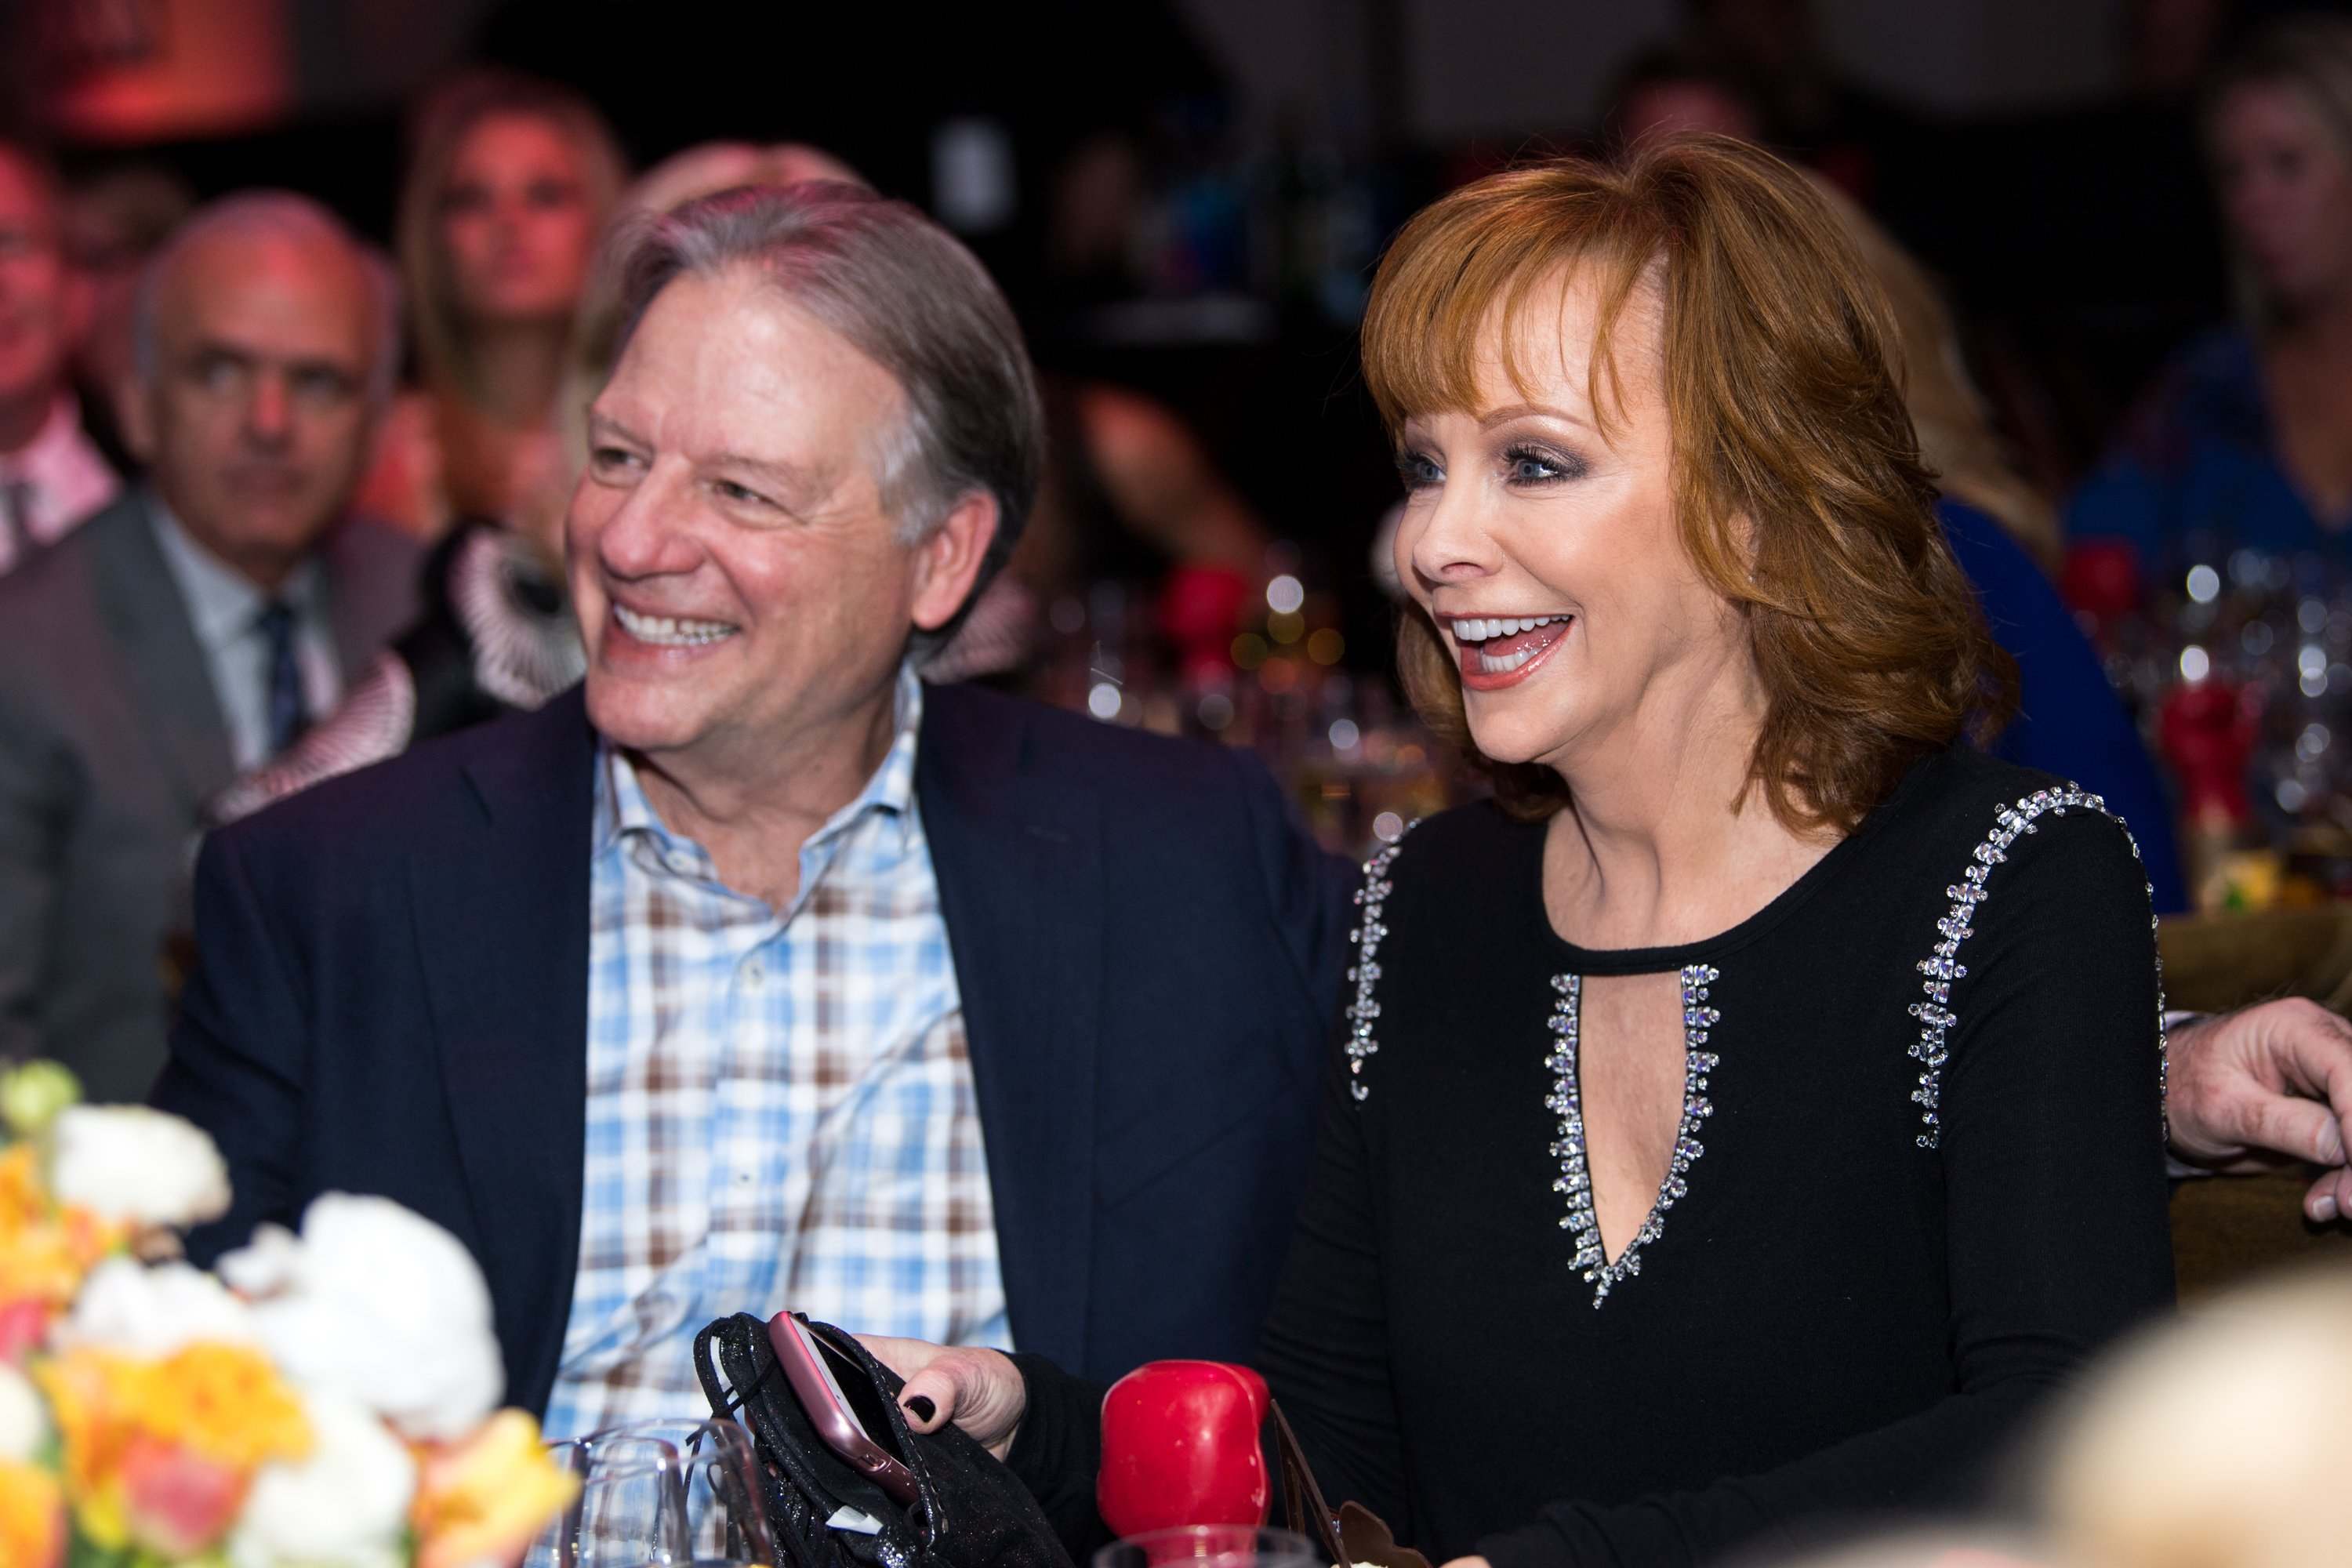 Anthony Lasuzzo (L) and Reba McEntire attend the Celebrity Fight Night's Founders Club Dinner on March 9, 2018, in Phoenix, Arizona. | Source: Getty Images.